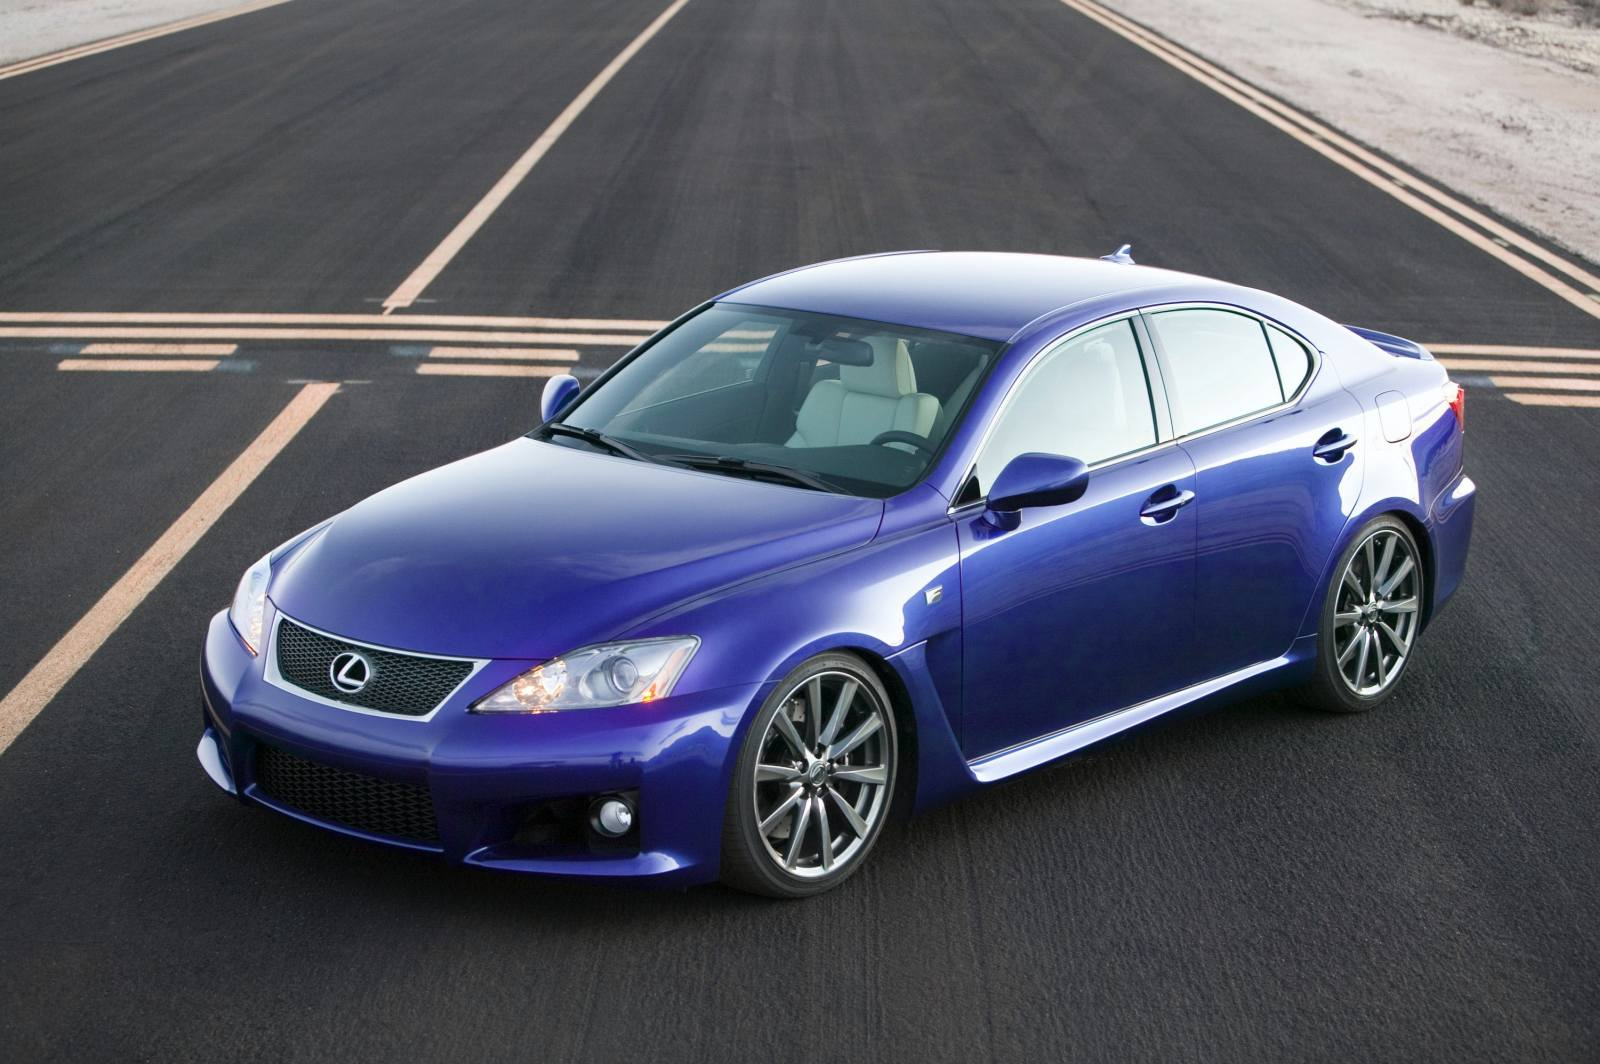 Lexus IS F hires Wallpapers Desktop Download